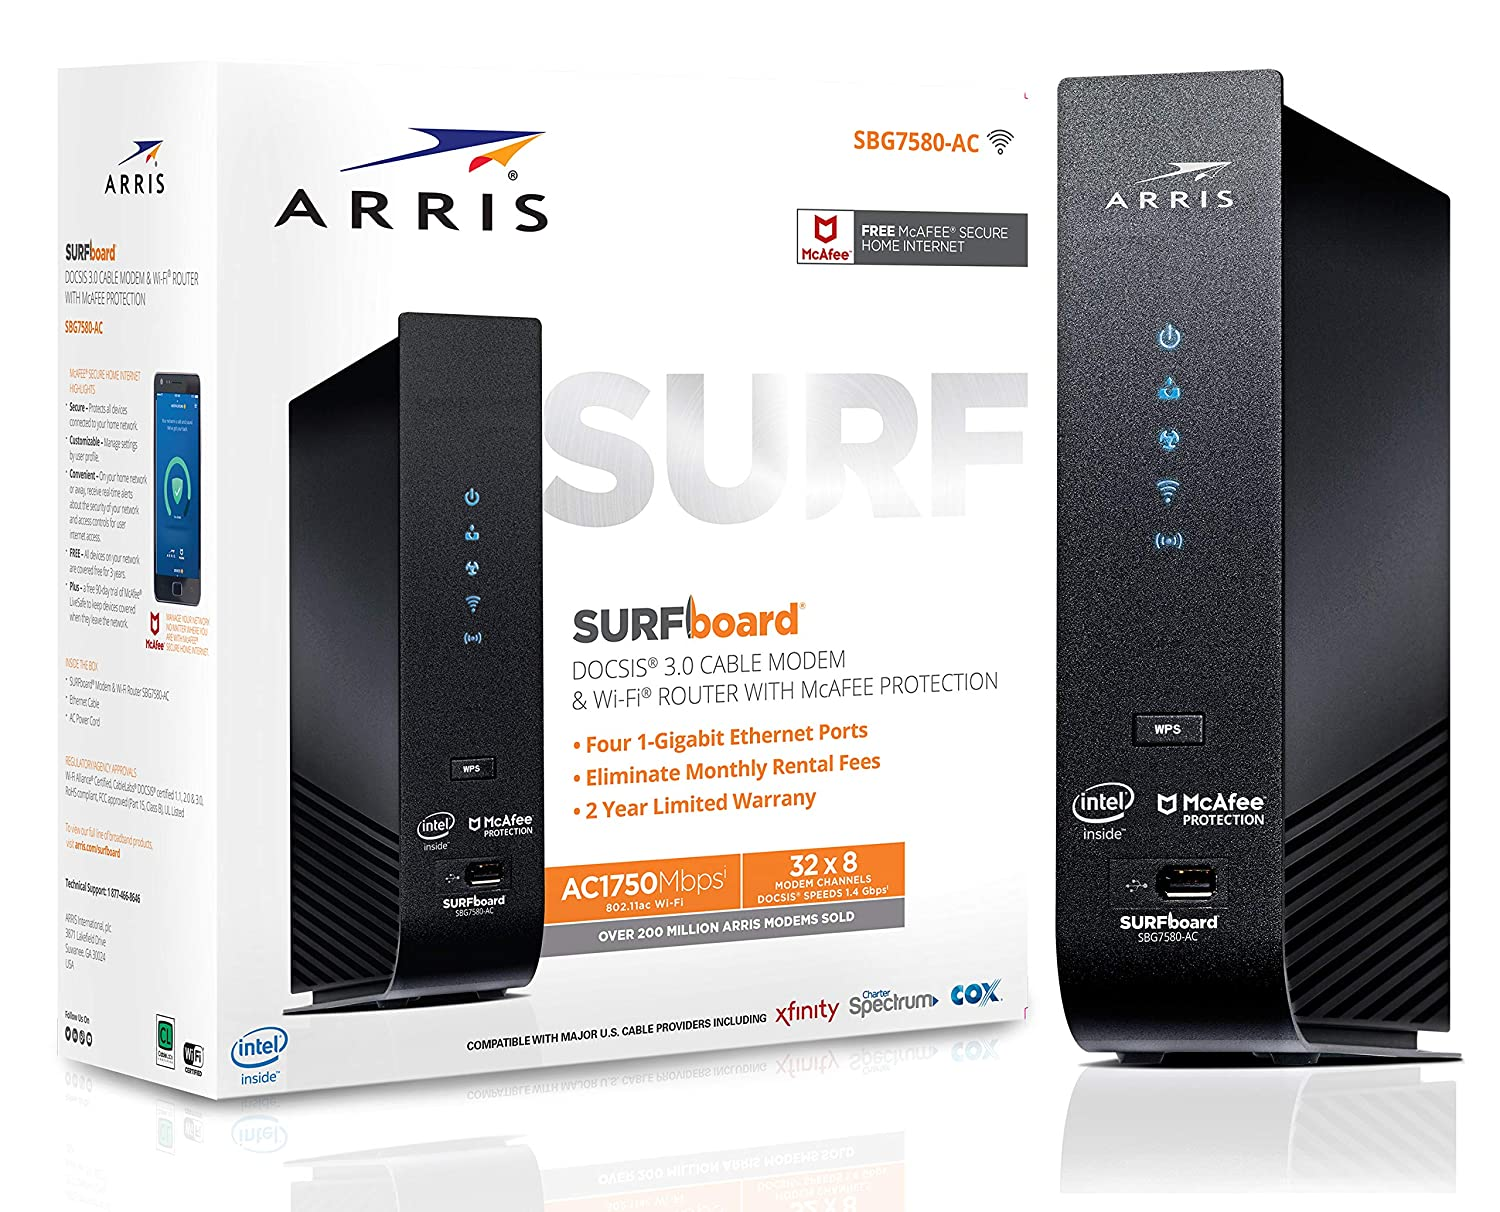 ARRIS SURFboard (32x8) DOCSIS 3.0 Cable Modem Plus AC1750 Dual Band Wi-Fi Router, 1.4 Gbps Max Speed, Certified for Comcast Xfinity, Spectrum, Cox & more (SBG7580AC McAfee)